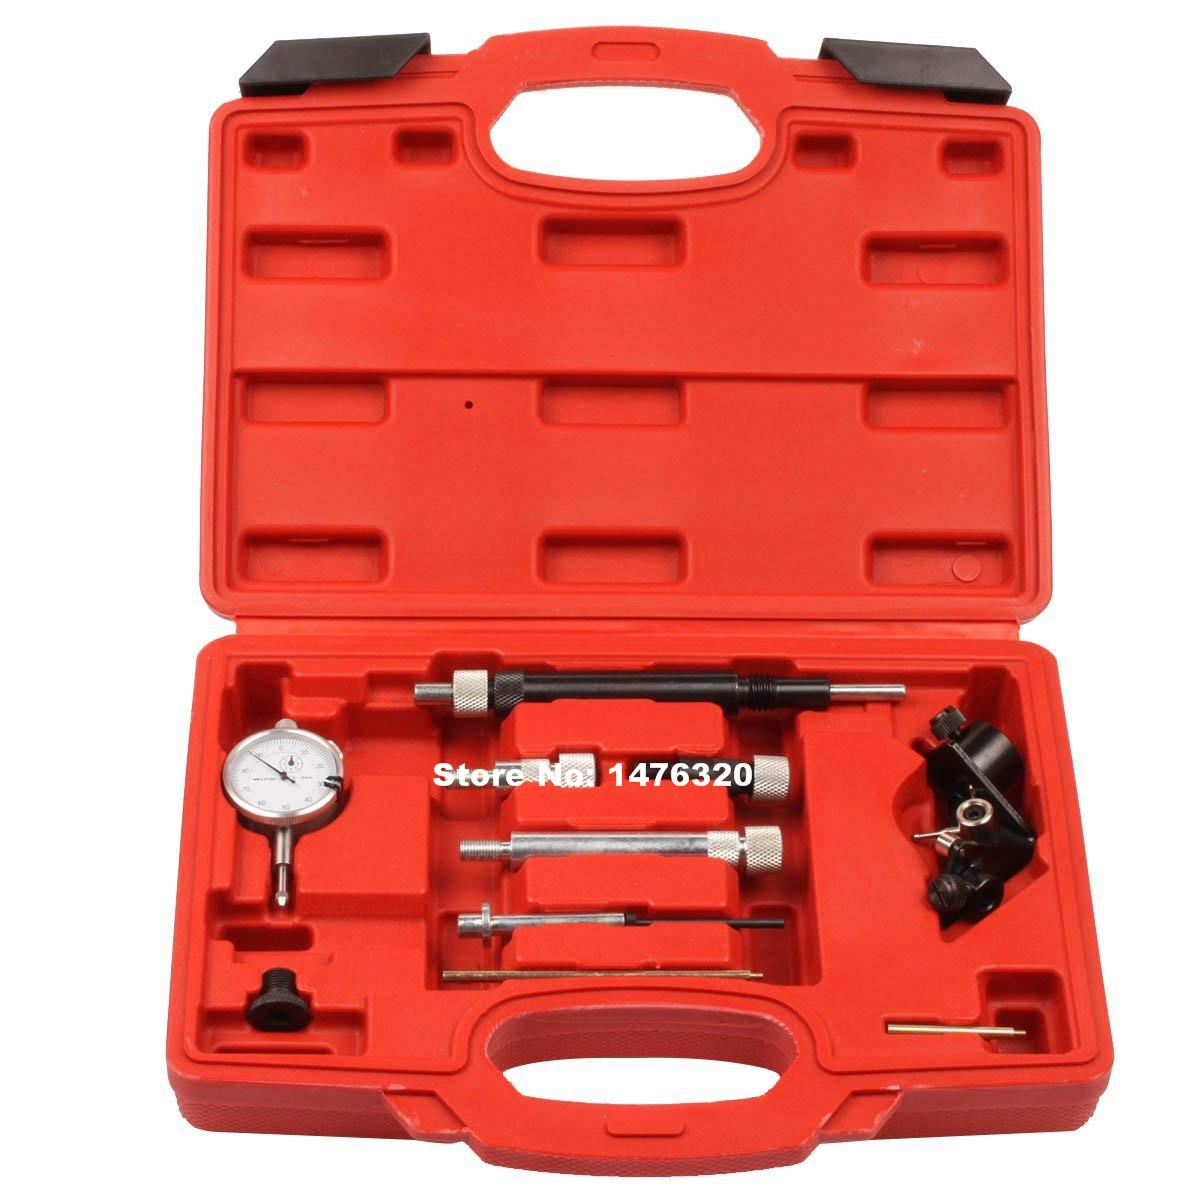 ФОТО Engine Diesel Fuel Injection Pump Timing Indicator Tool Set For BMW AUDI VW MAZDA NISSAN RENAULT AT2175